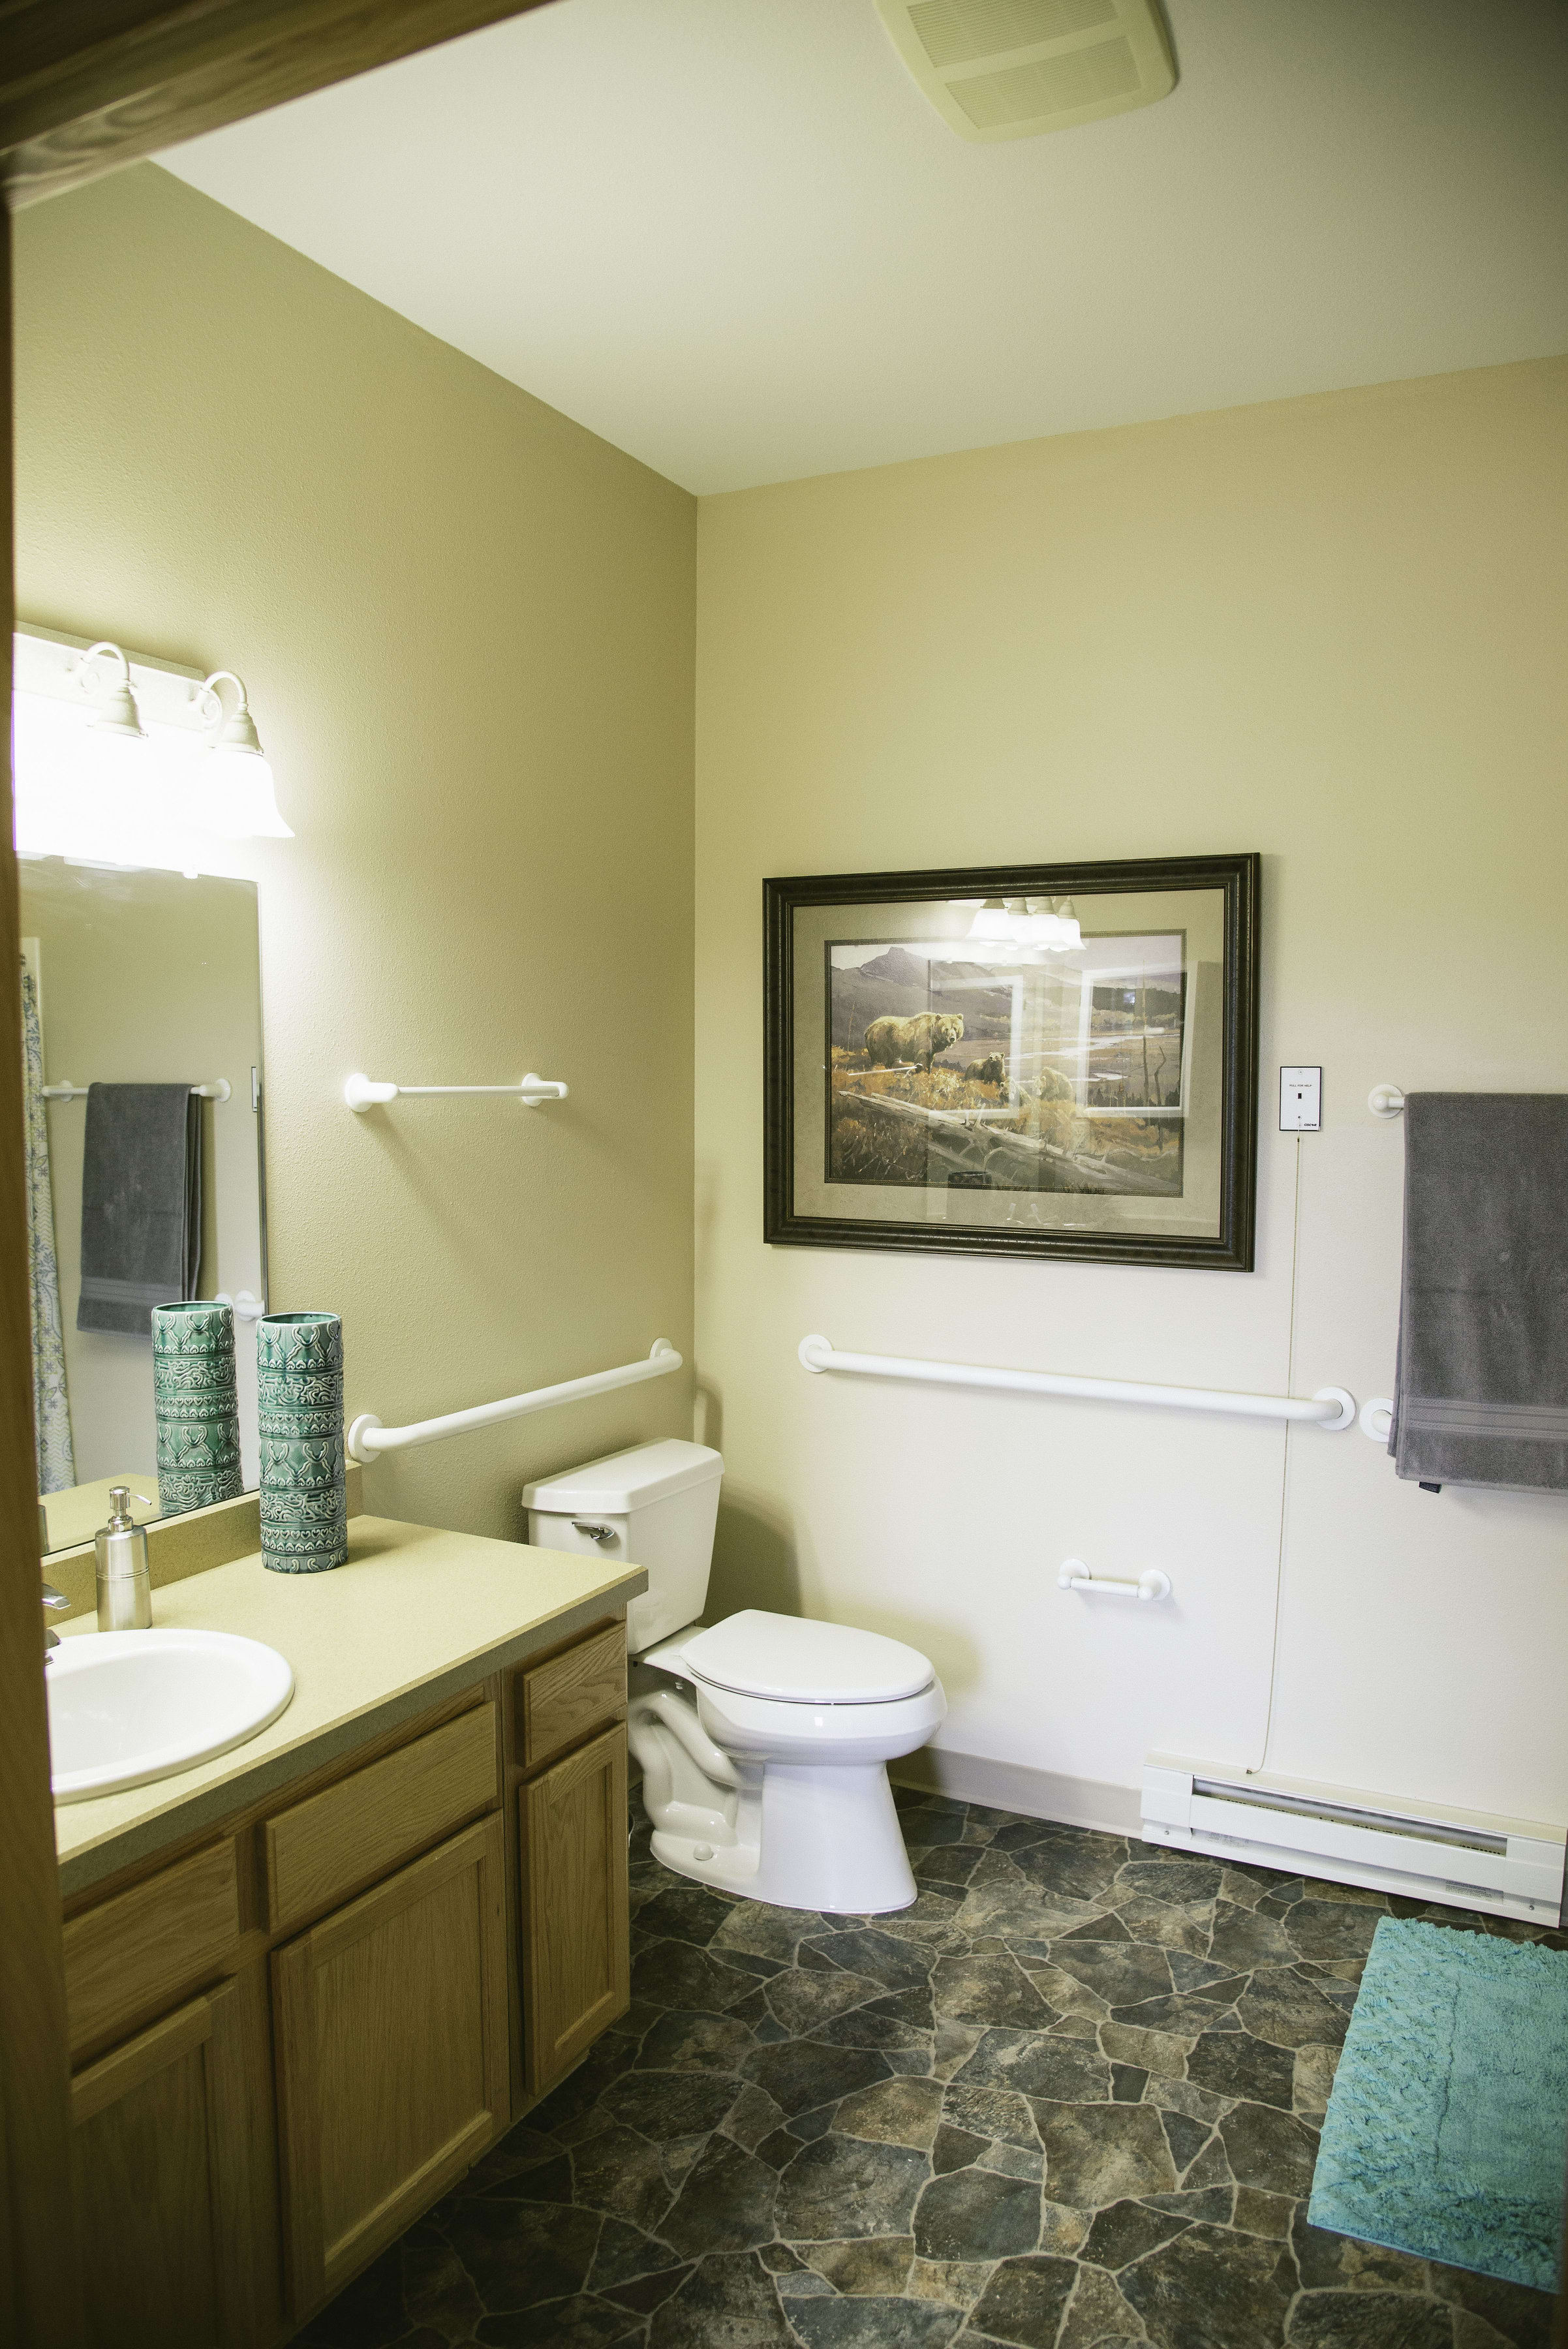 Spacious bathroom of a resident apartment in our senior living facility in Whitefish, MT